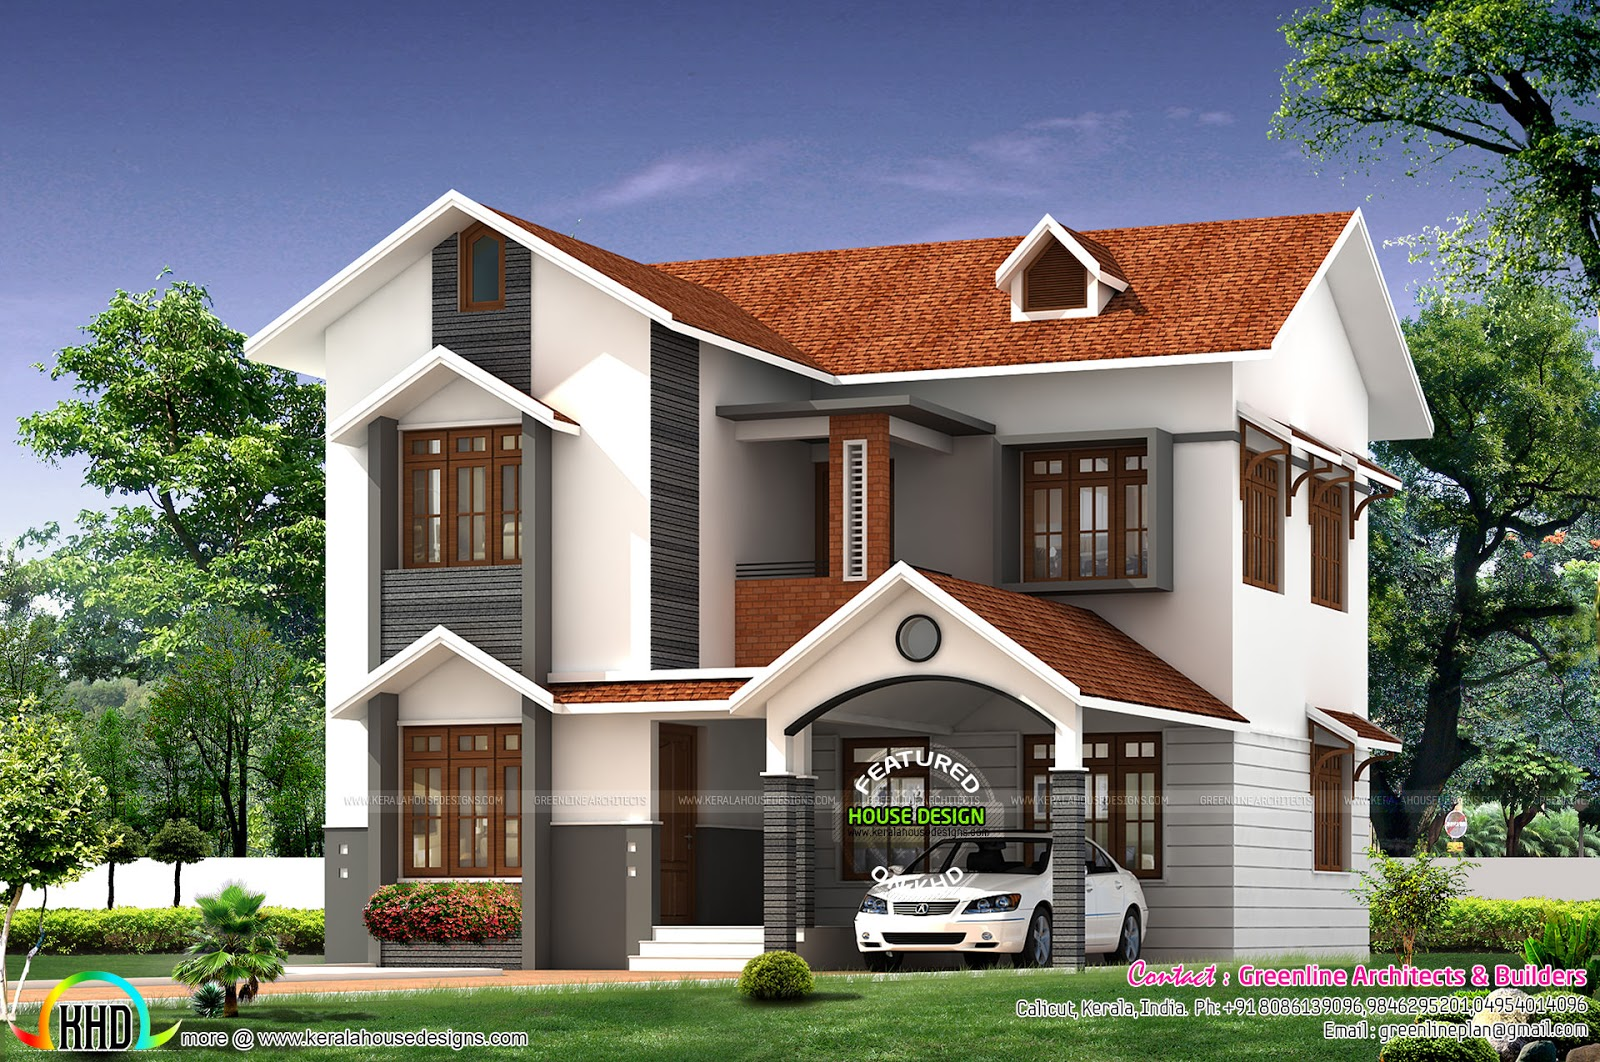 Simple cute home architecture kerala home design and for Cute house plans